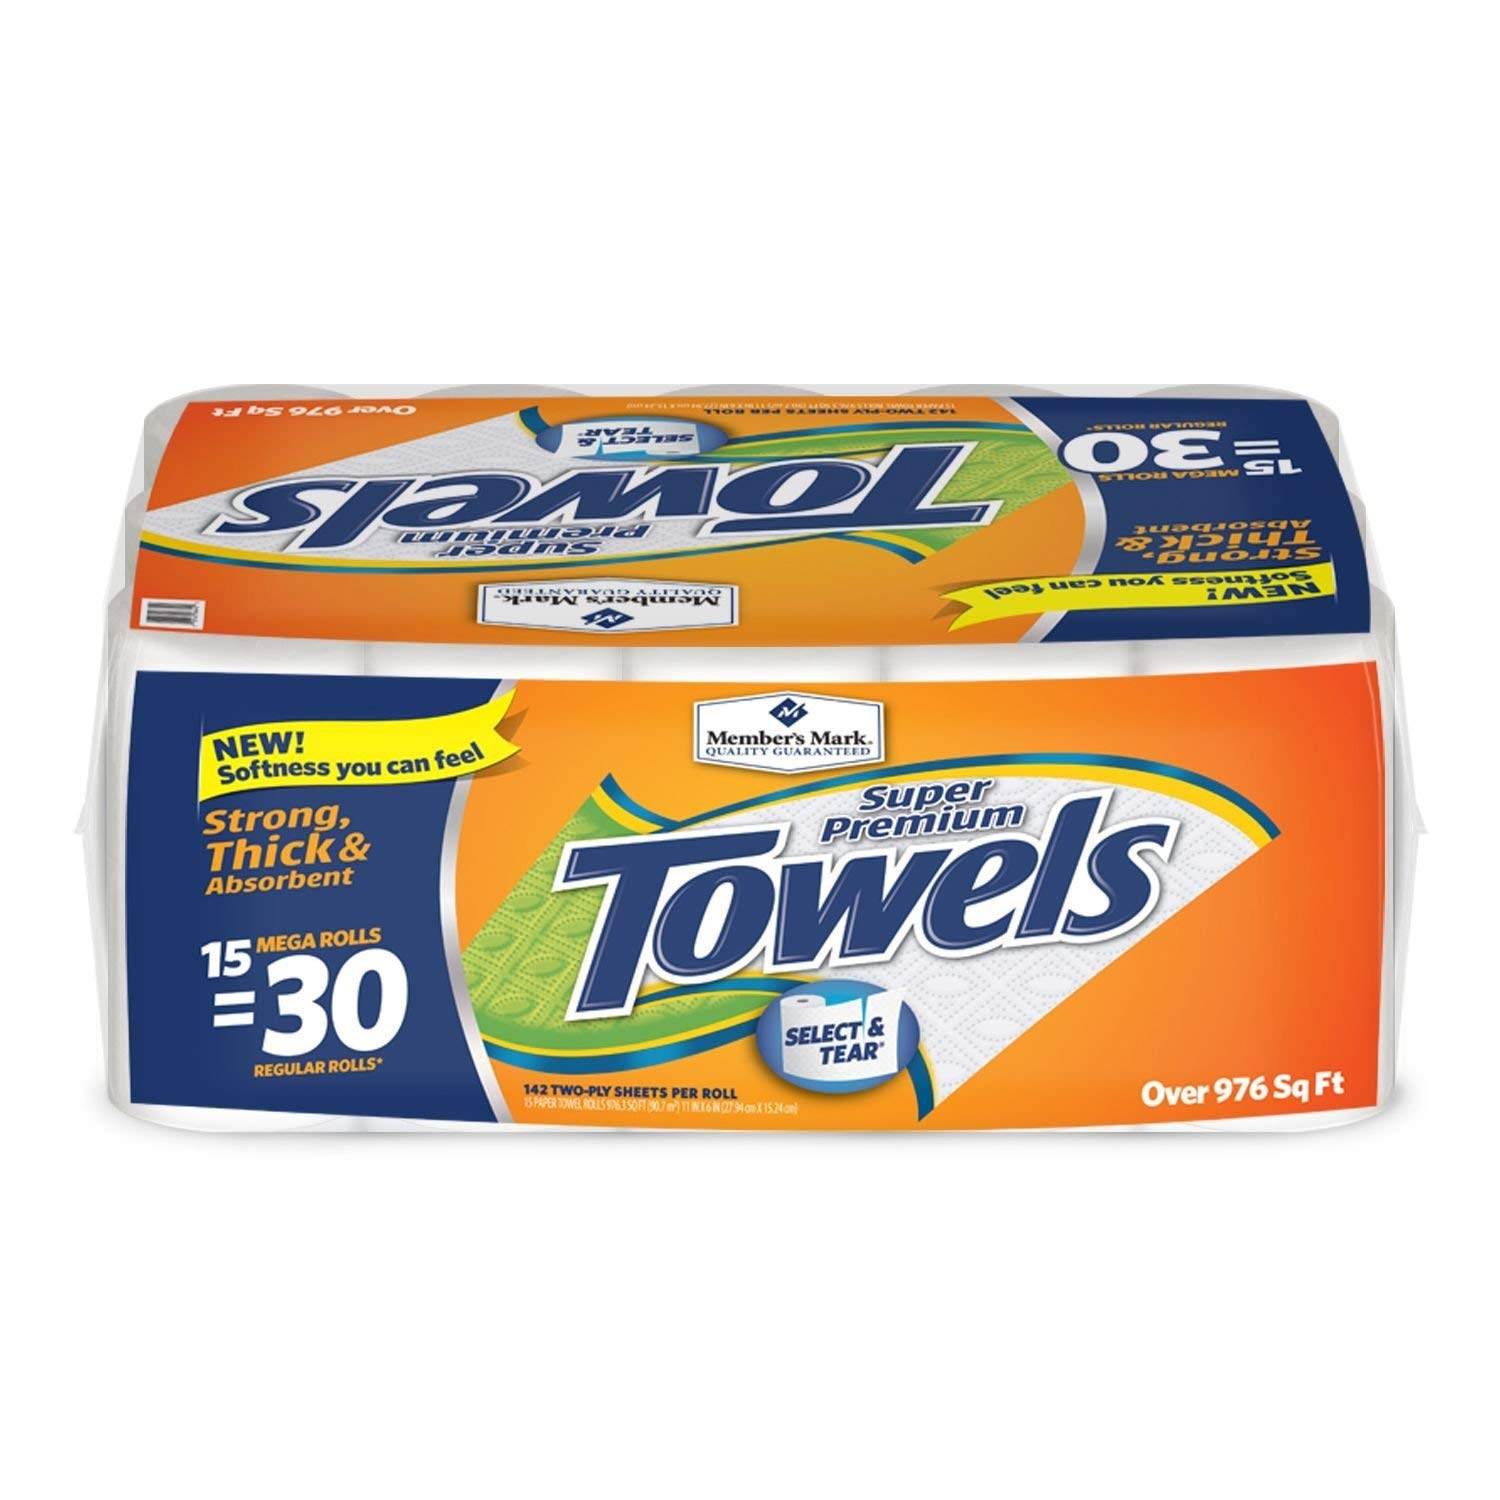 Member's Mark Super Premium Paper Towels 2 Pack (15 Rolls, 150 Sheets per roll) More Absorbent for Even The Toughest by Europe Standard (Image #1)